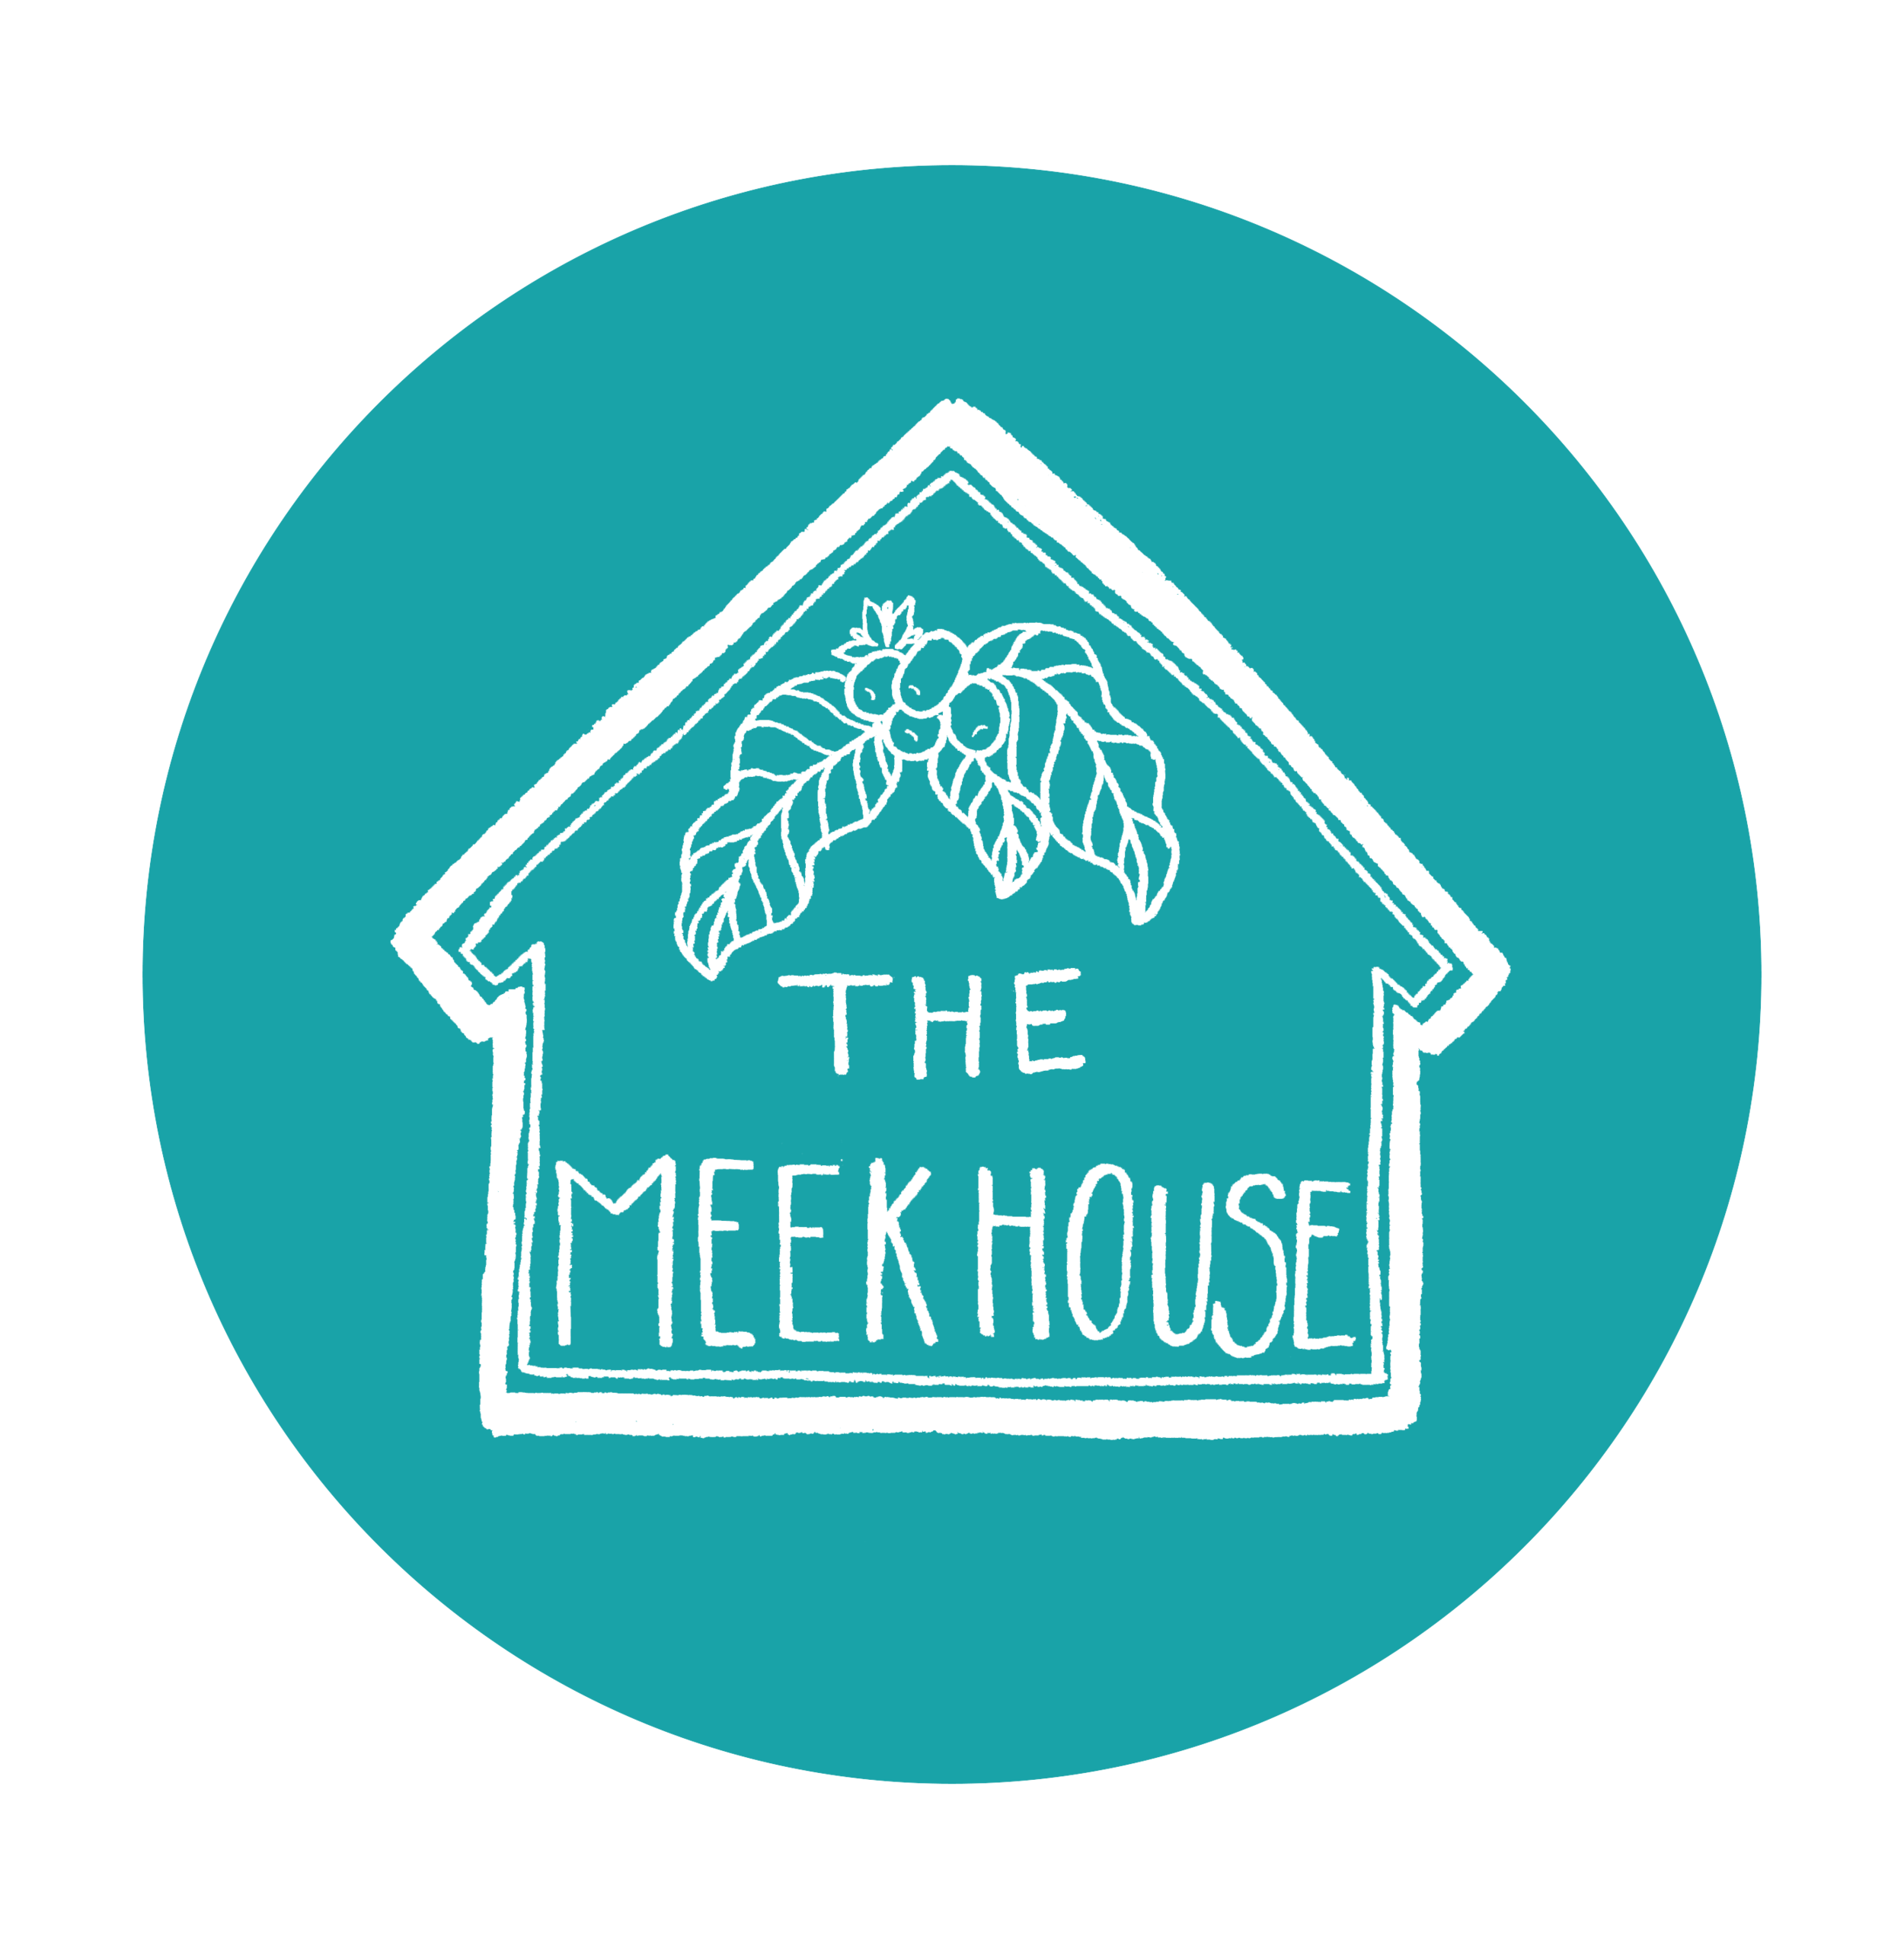 Copy of The Meek House.png